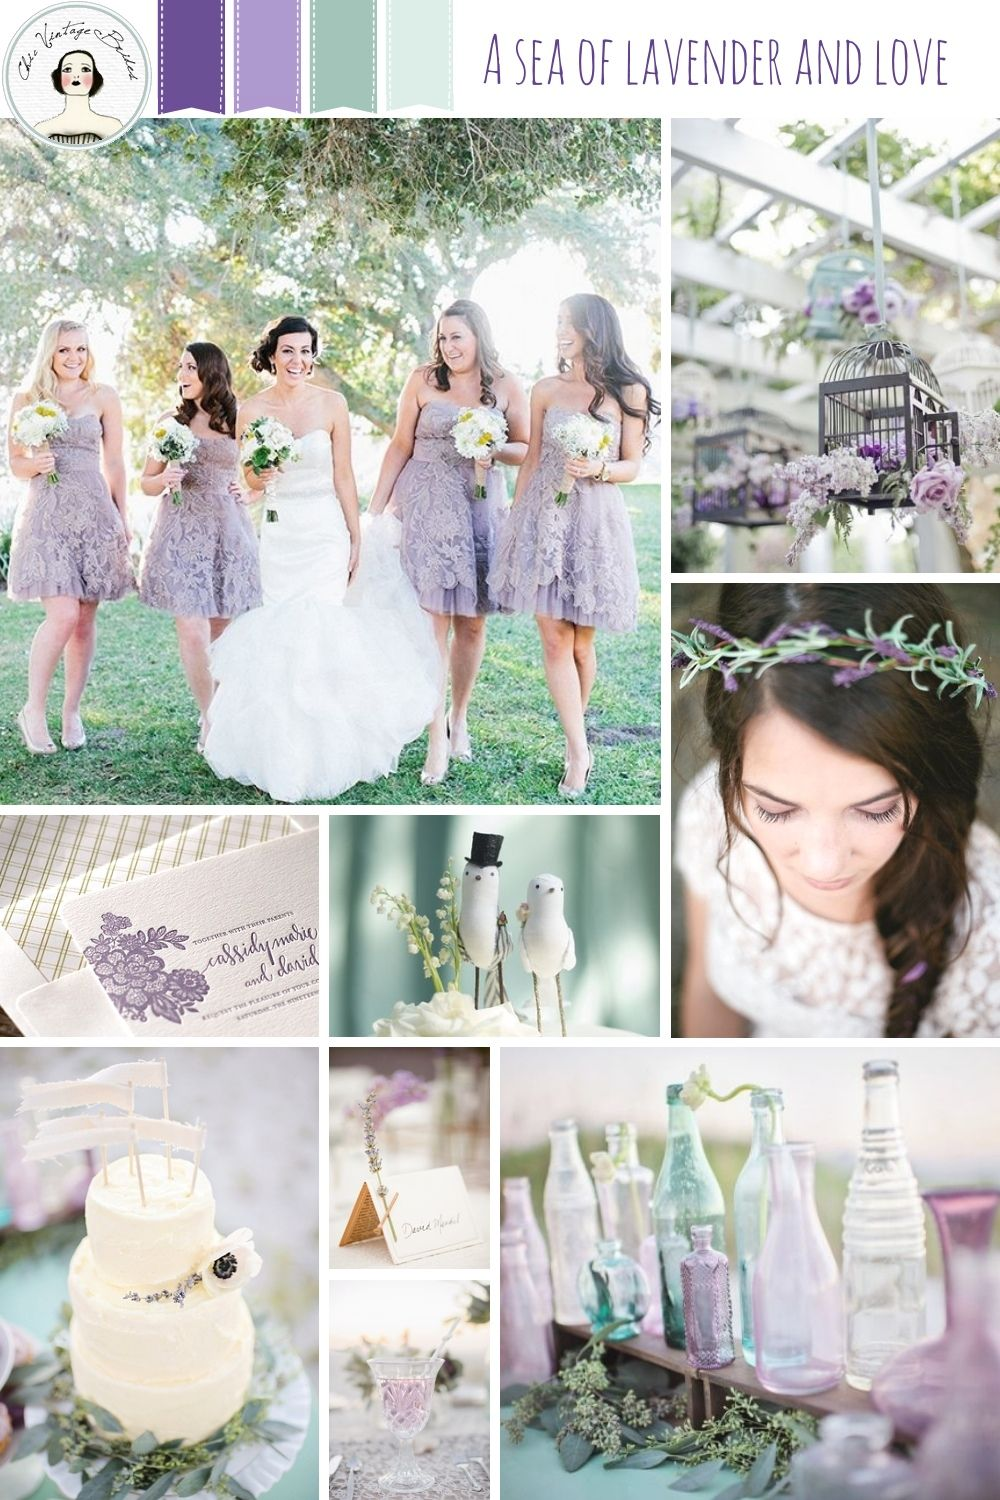 A Sea Of Lavender And Love Romantic Wedding Inspiration In Shades